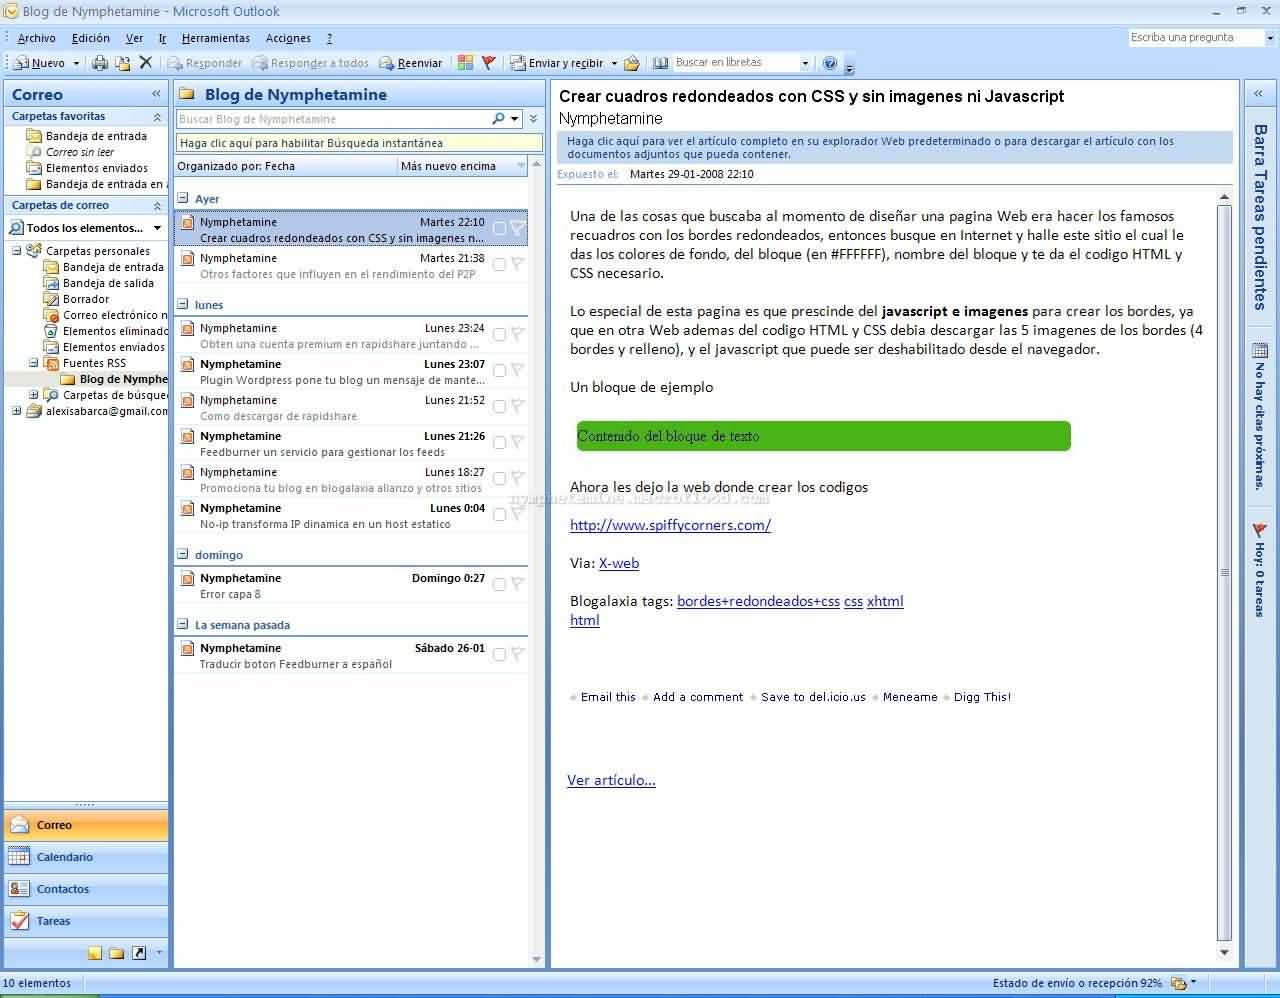 outlook2007rss.JPG